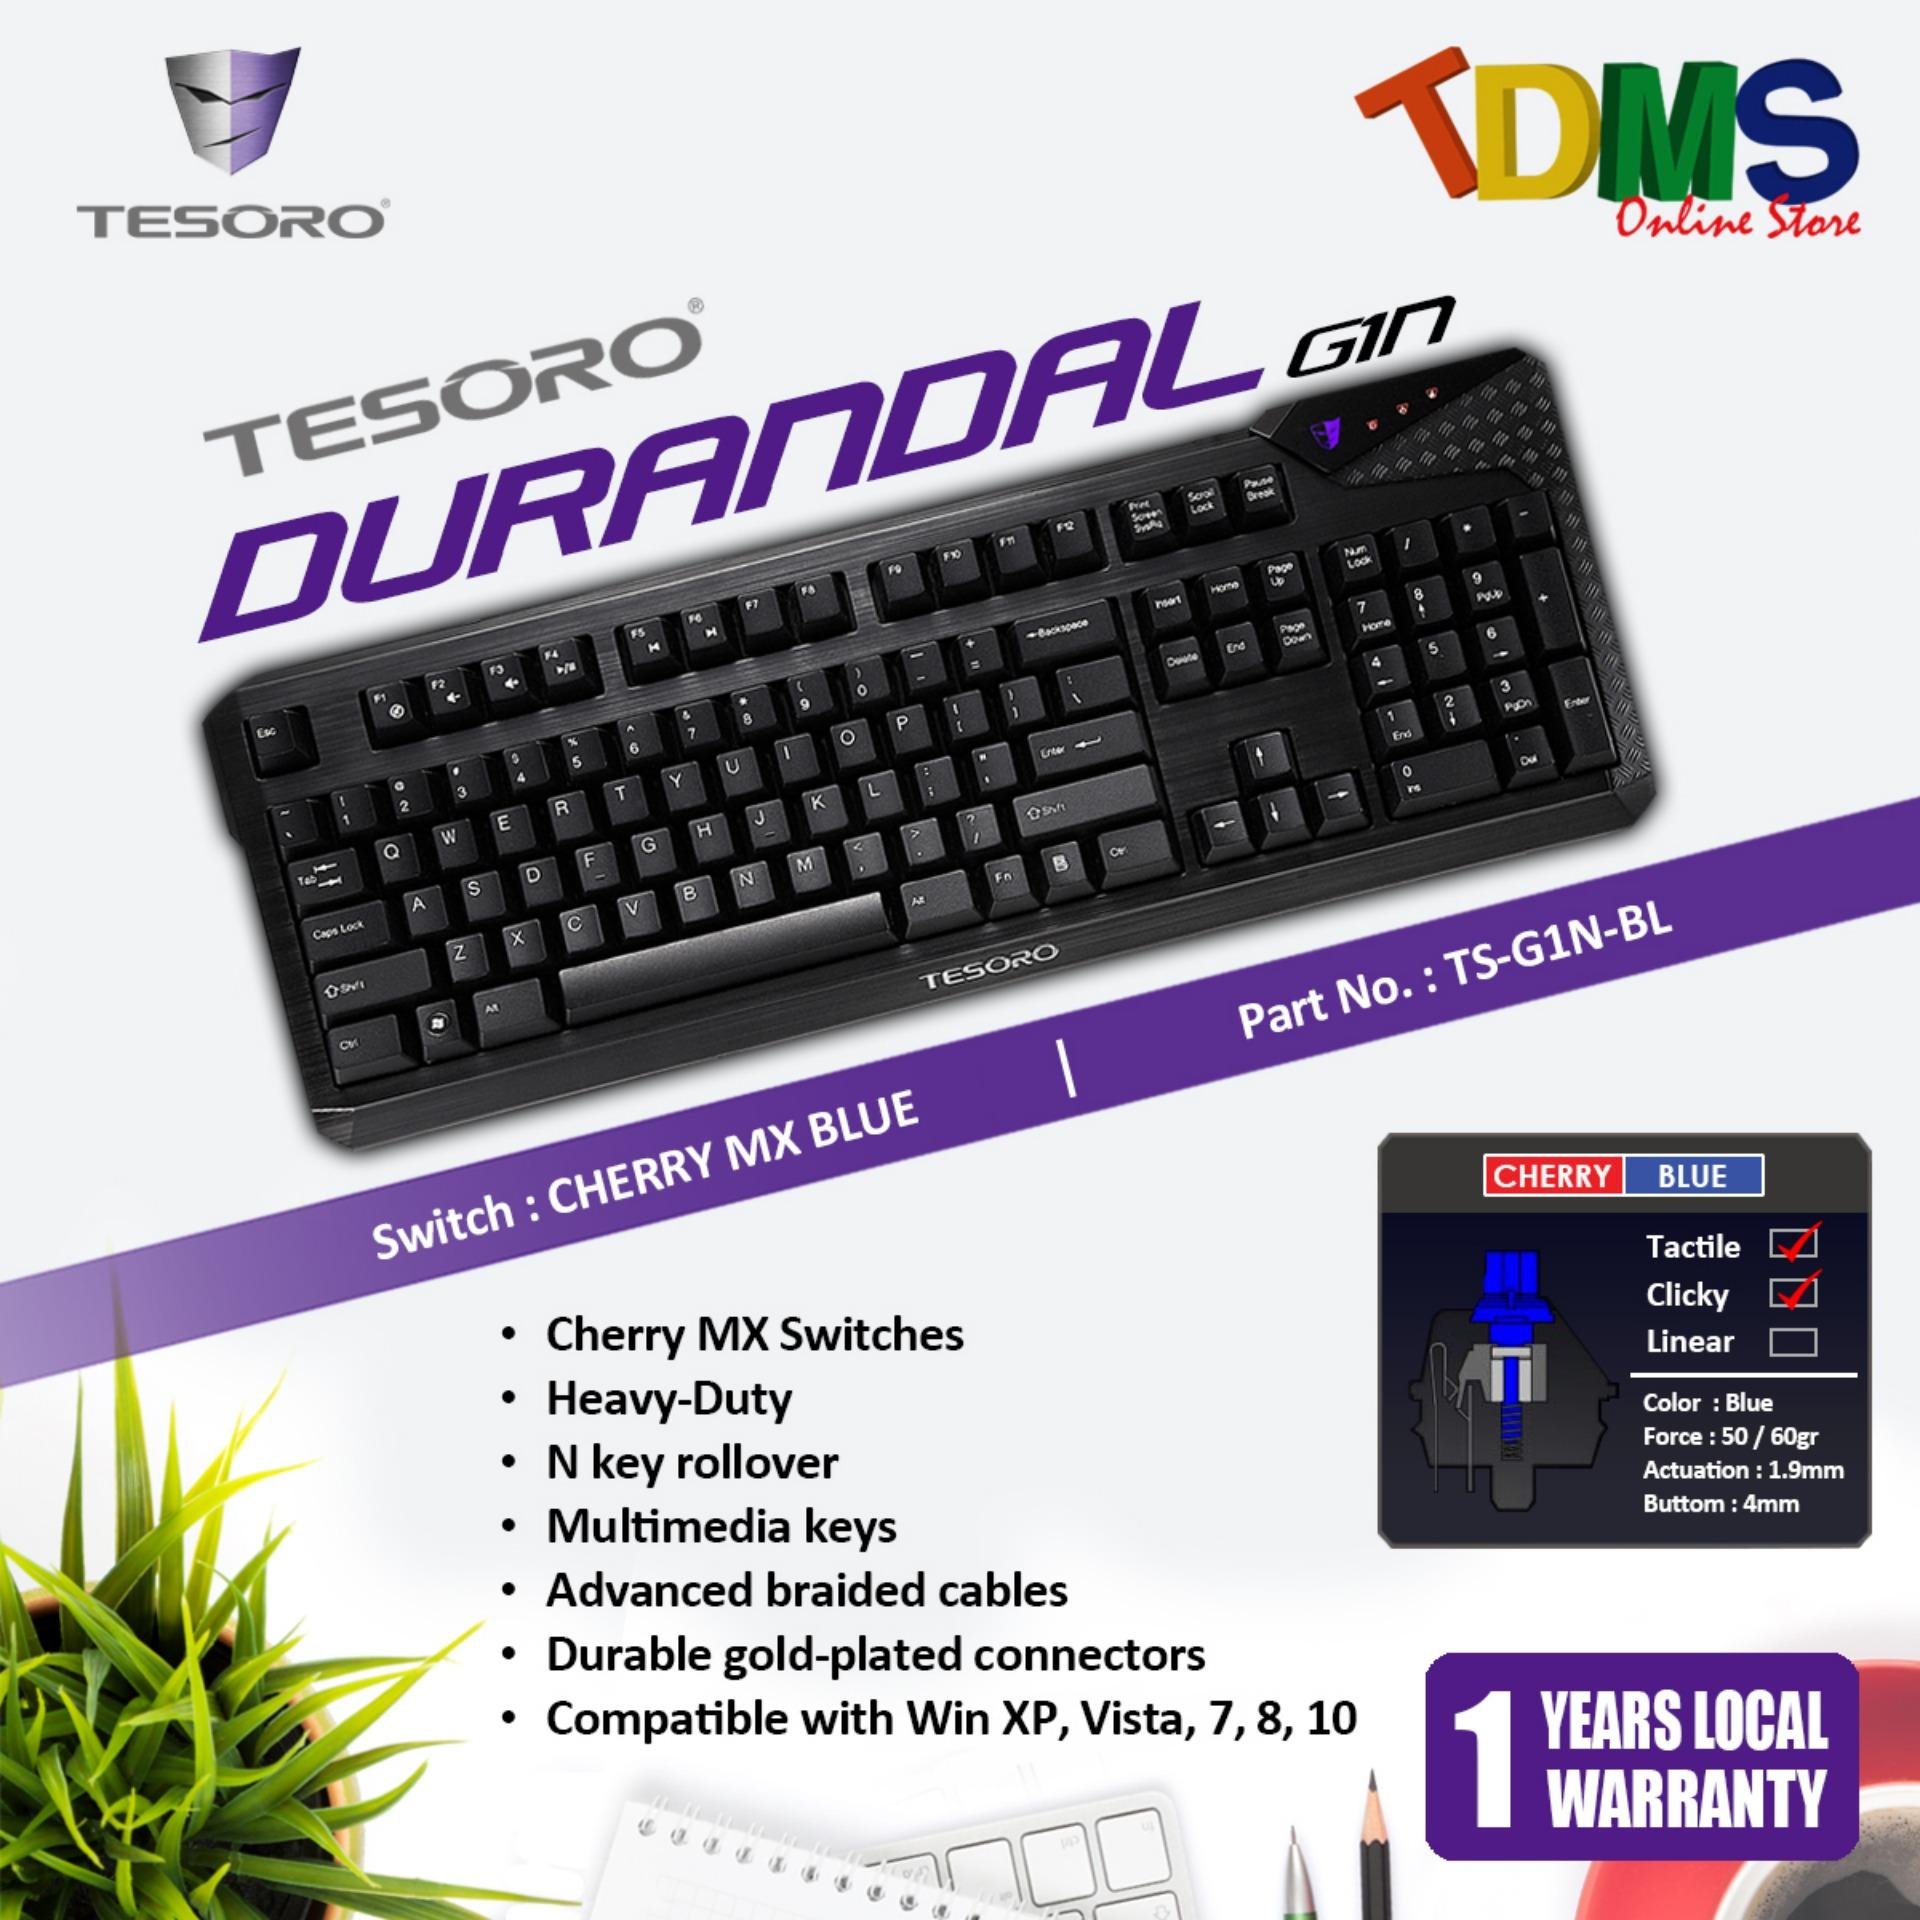 6e6062e1092 TESORO DURANDAL G1N Mechanical Gaming Keyboard - CHERRY MX Blue Switch  Singapore